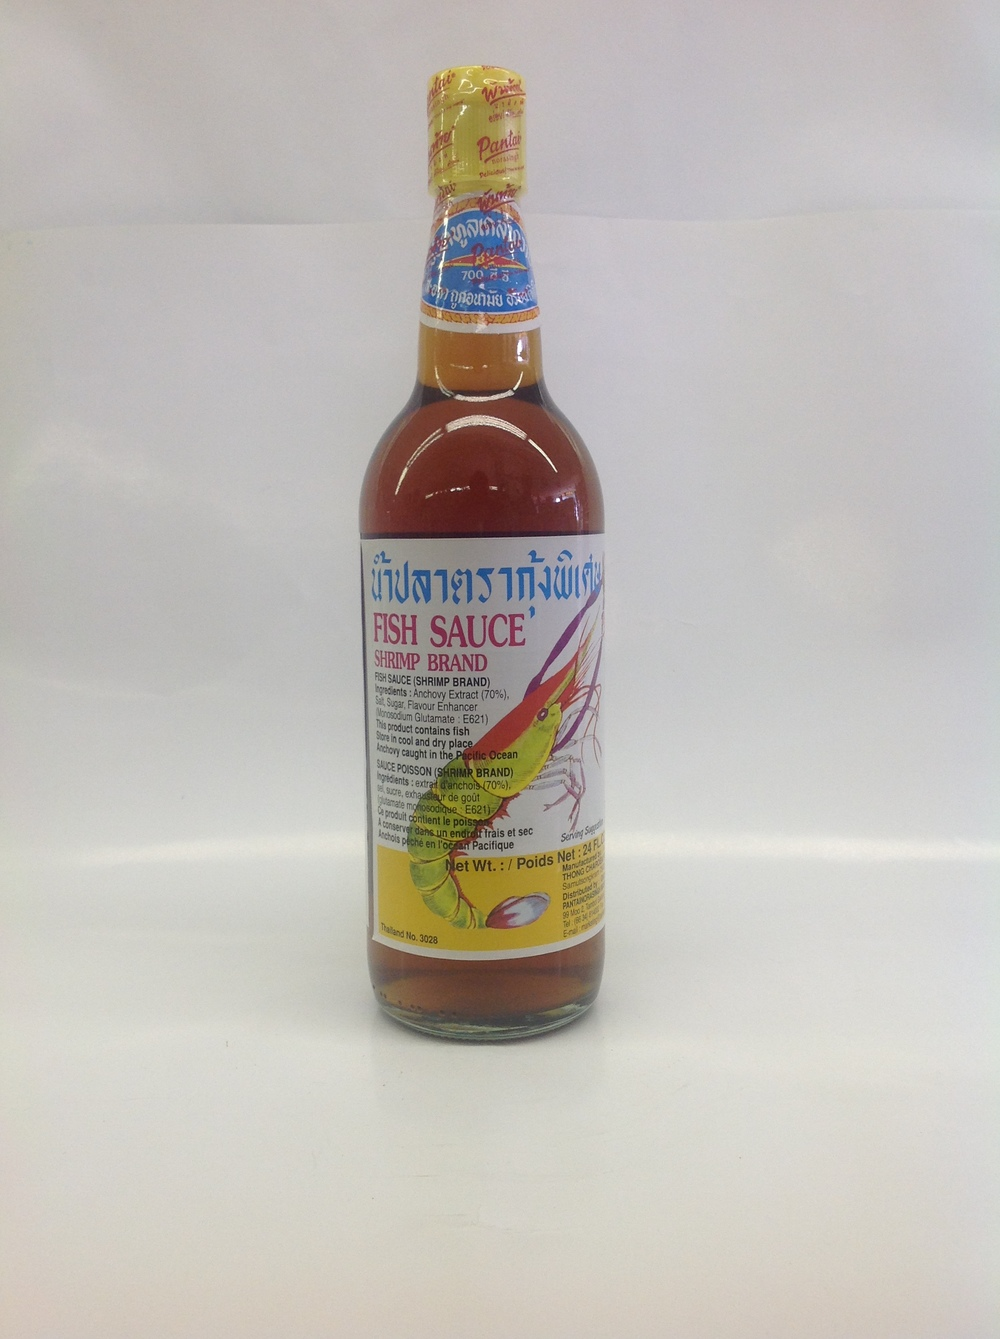 Fish Sauce (Shrimp Brand)   Pantai   FS16110 12x24 oz